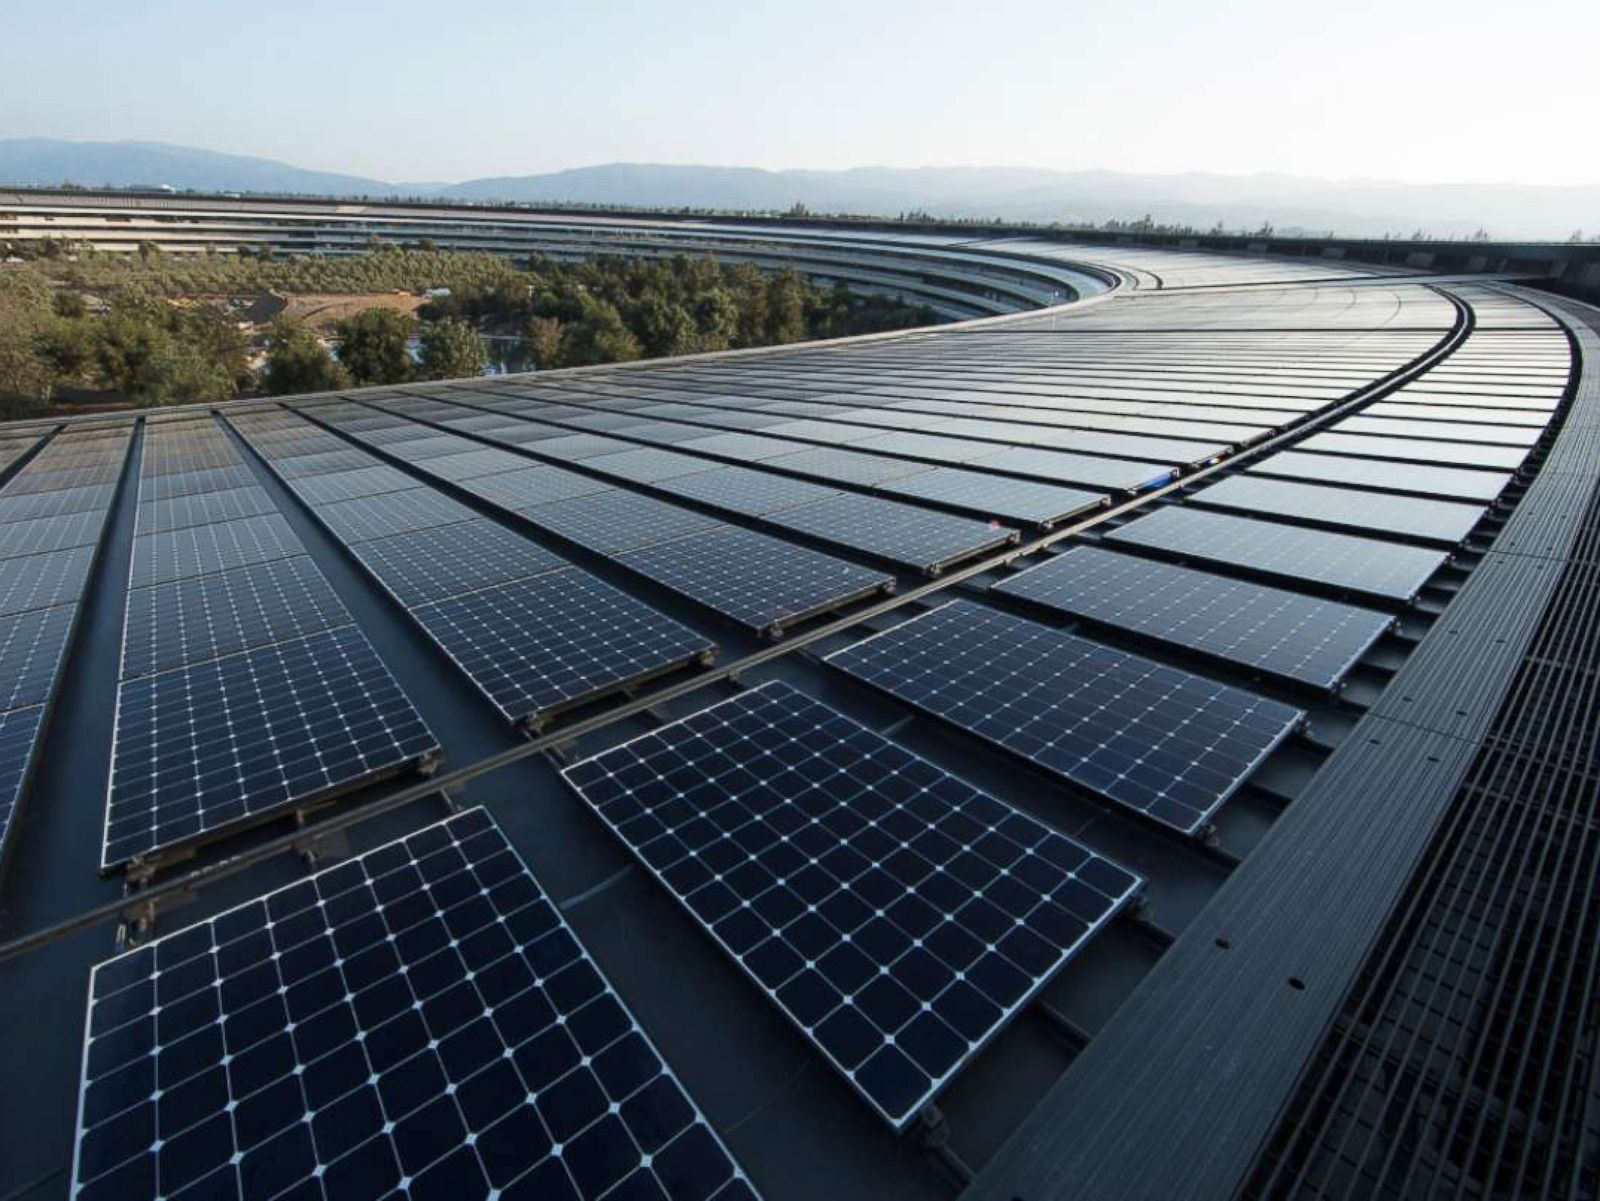 Apple's headquarters, facilities now powered by 100 percent